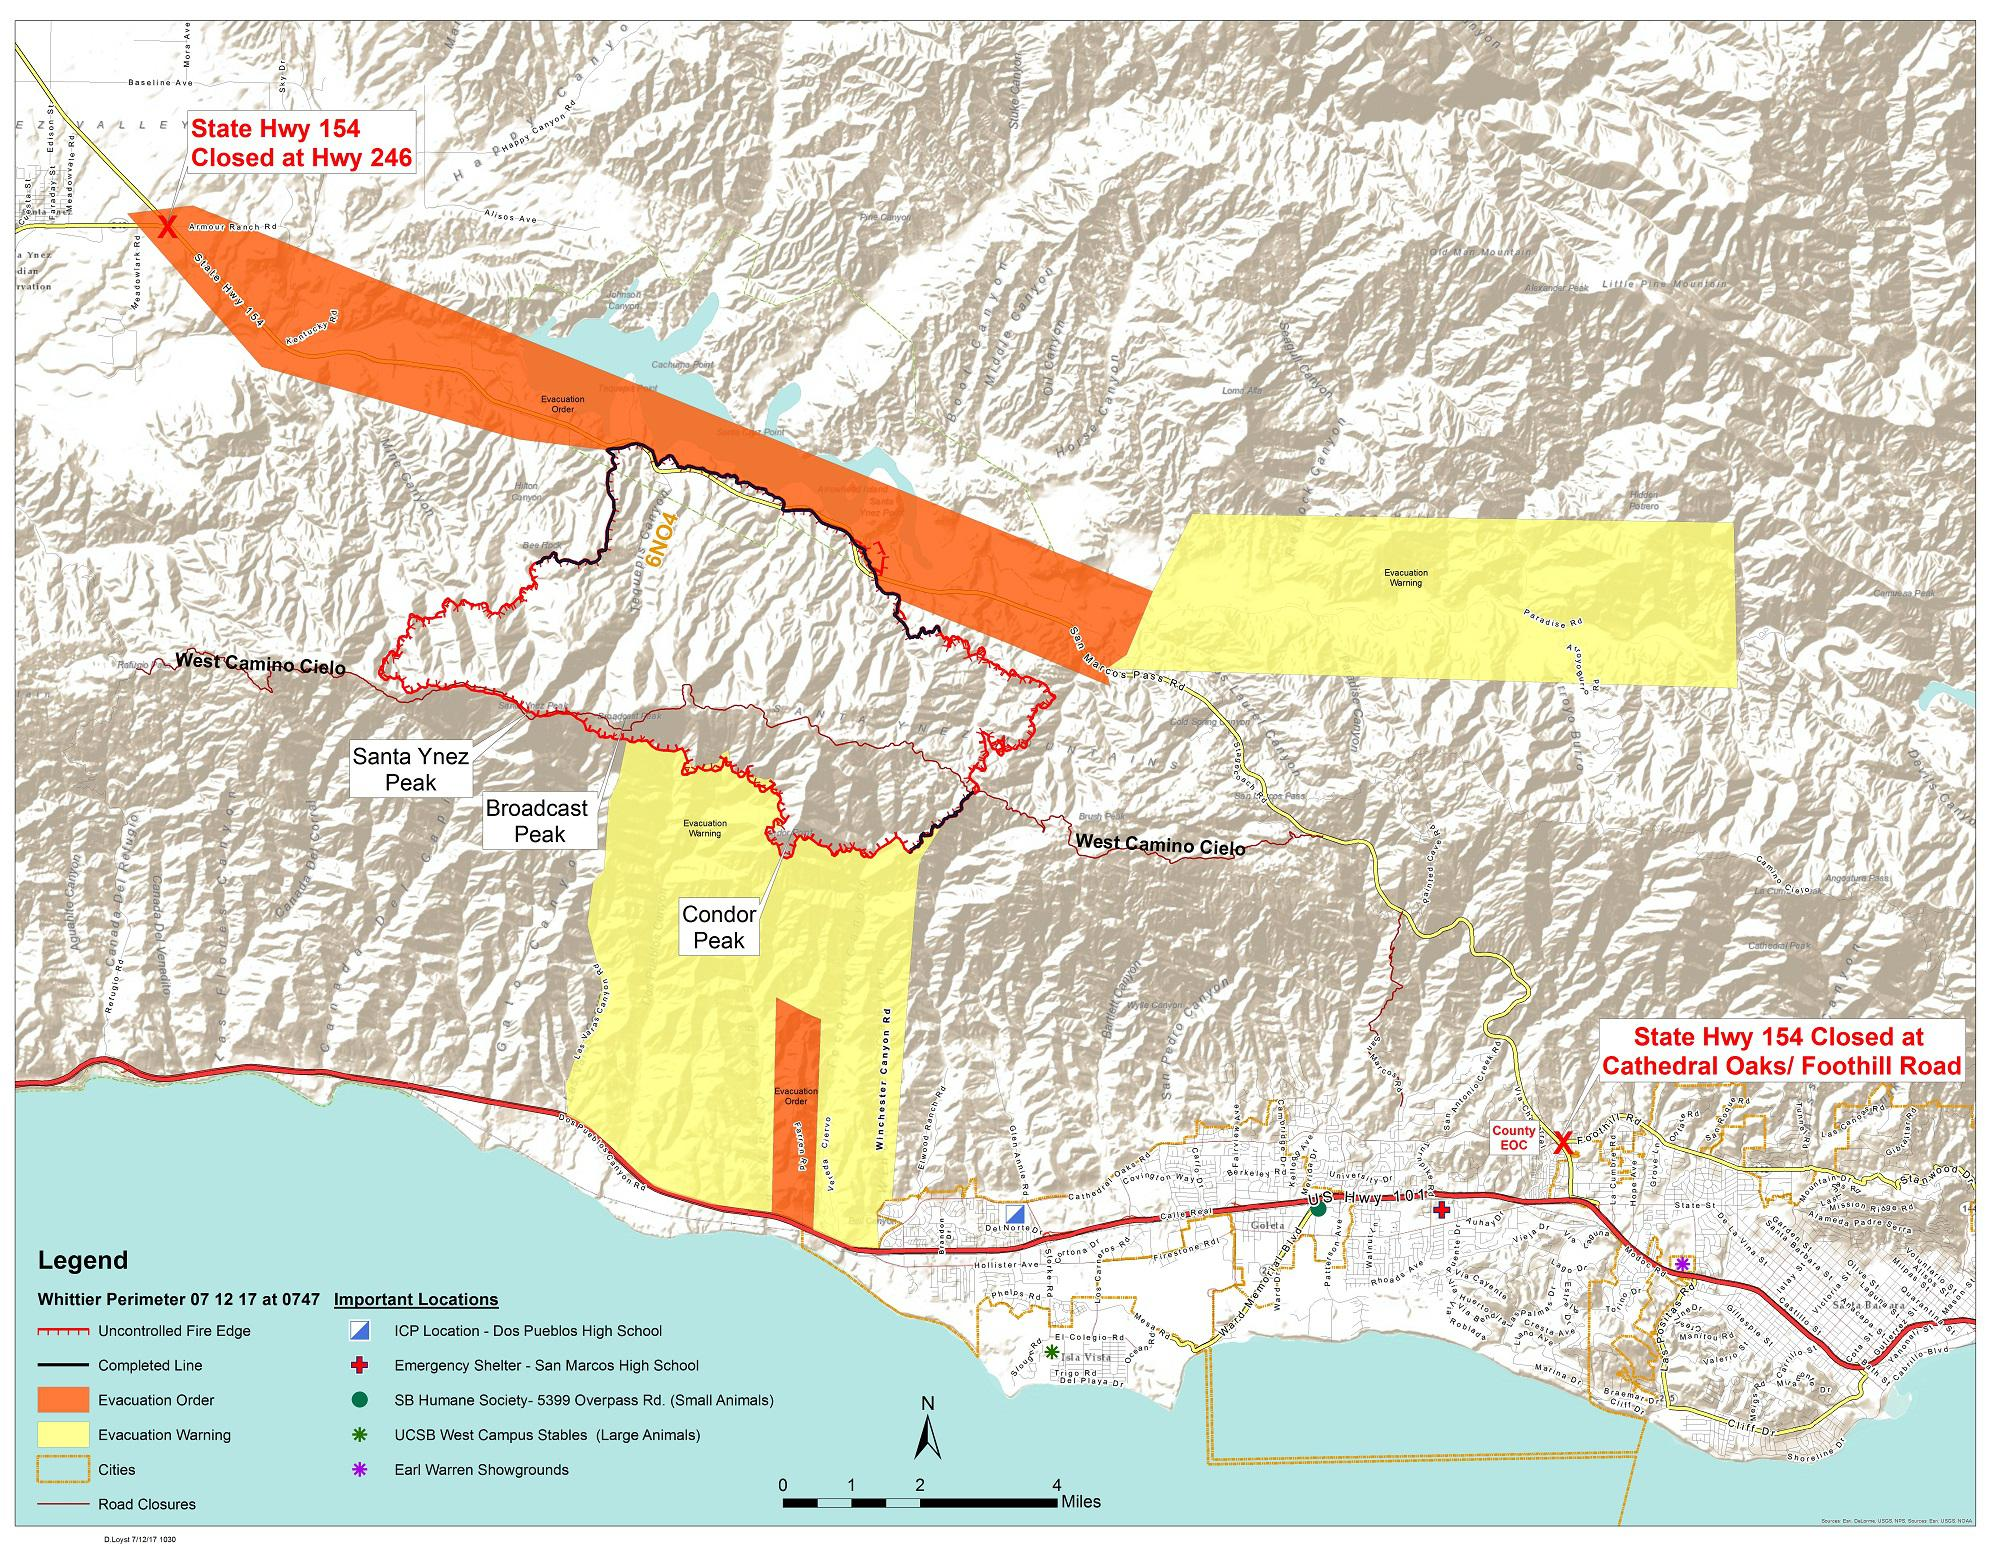 New Map Released On Whittier Brush Fire Boundaries, Evacuation